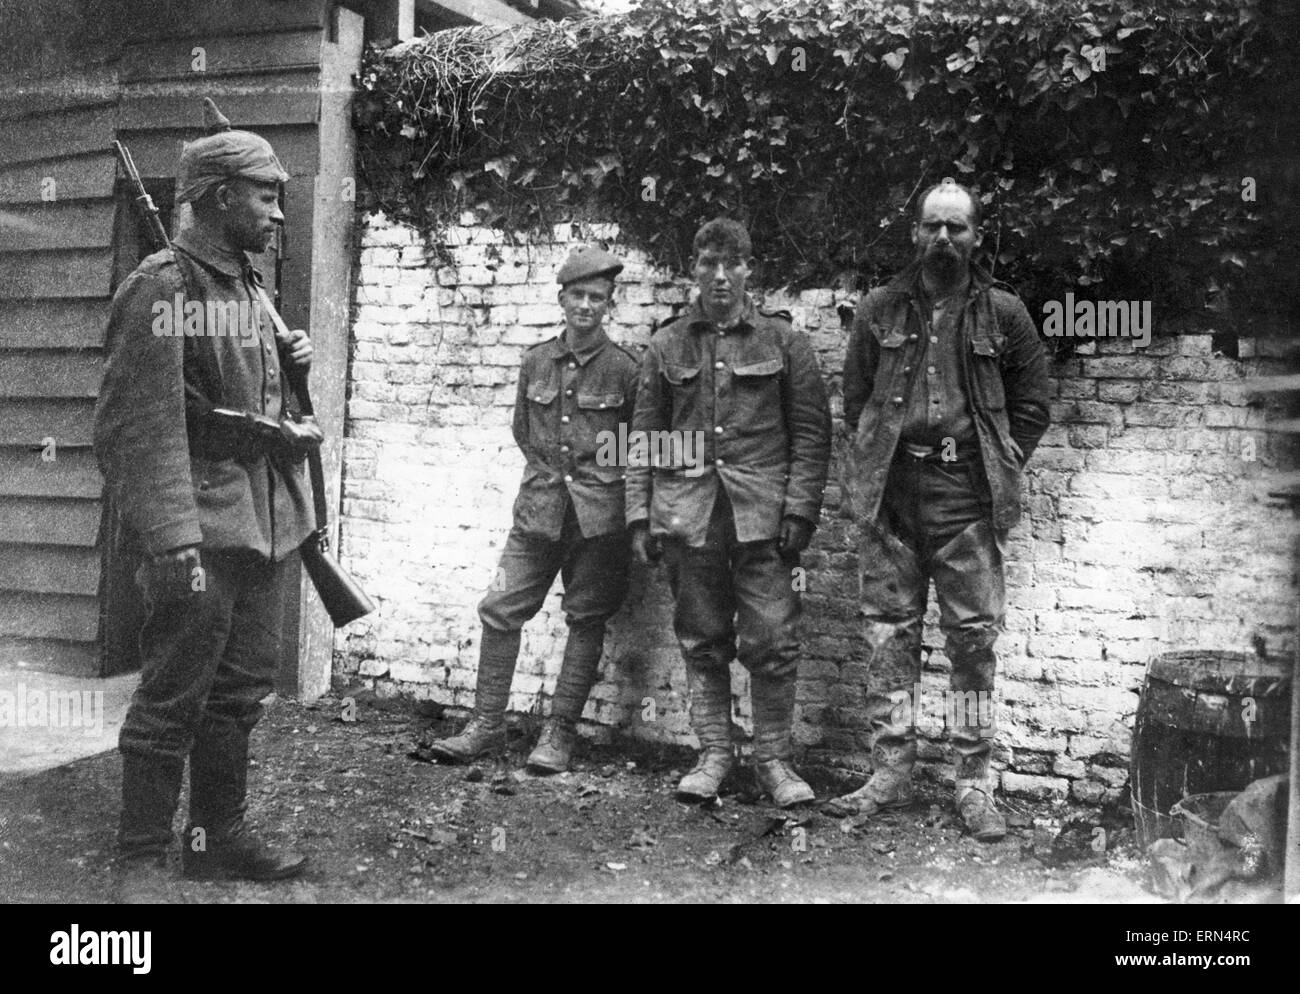 A German soldier guards three recently captured British soldiers April 1917 - Stock Image